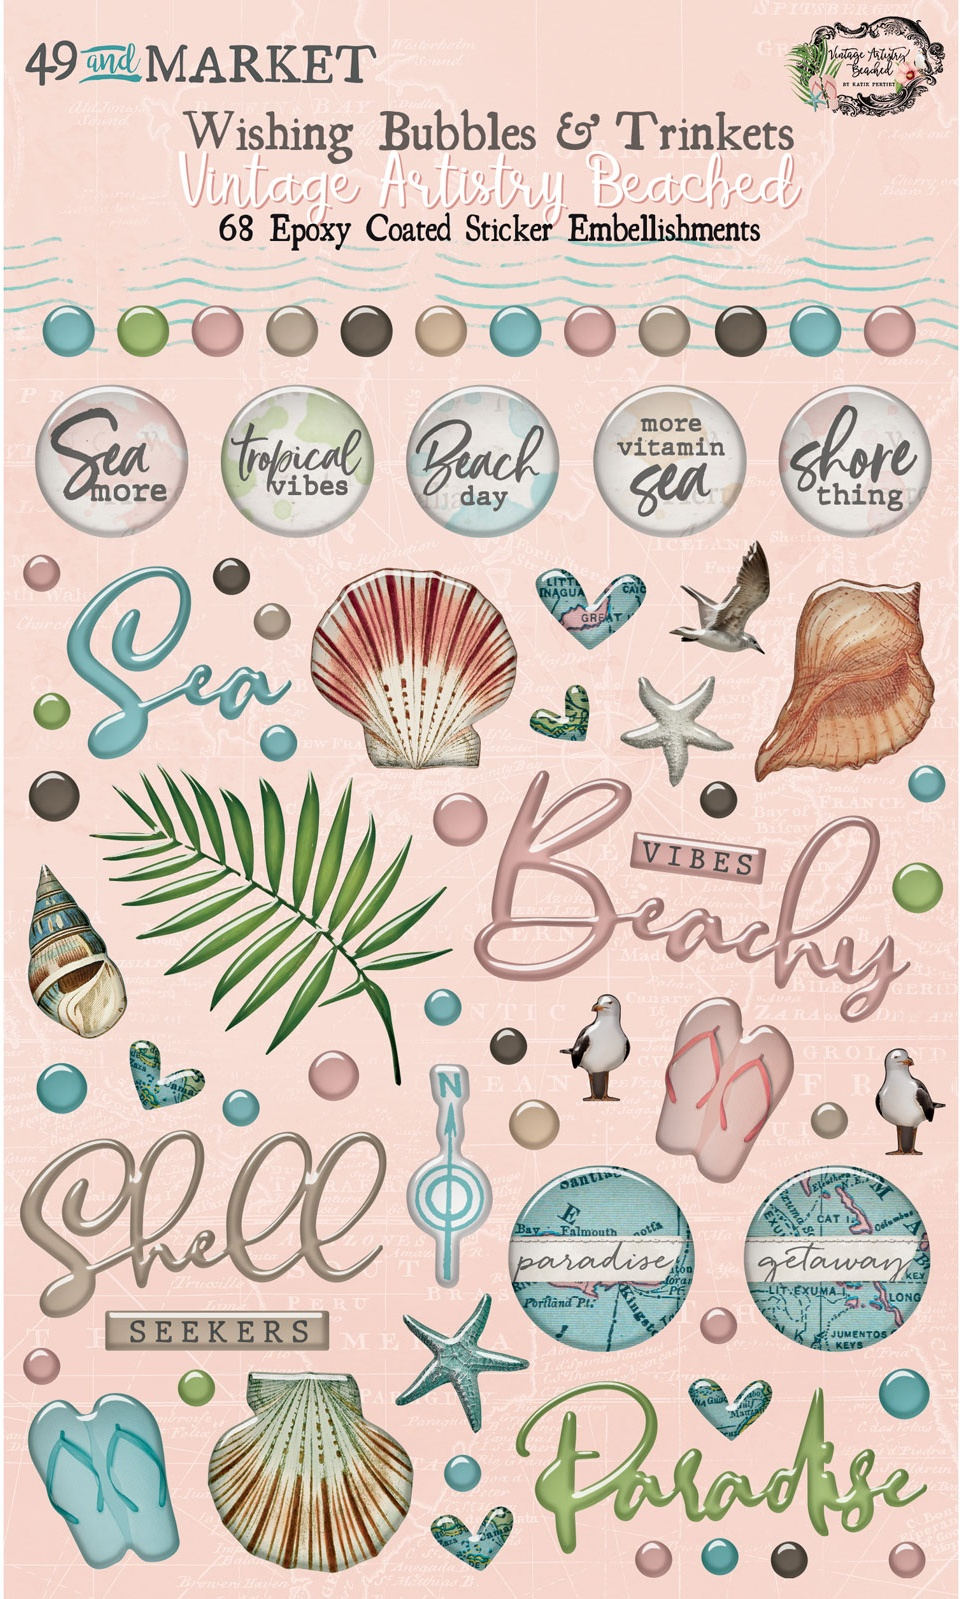 Vintage Artistry Beached Wishing Bubbles & Trinkets-